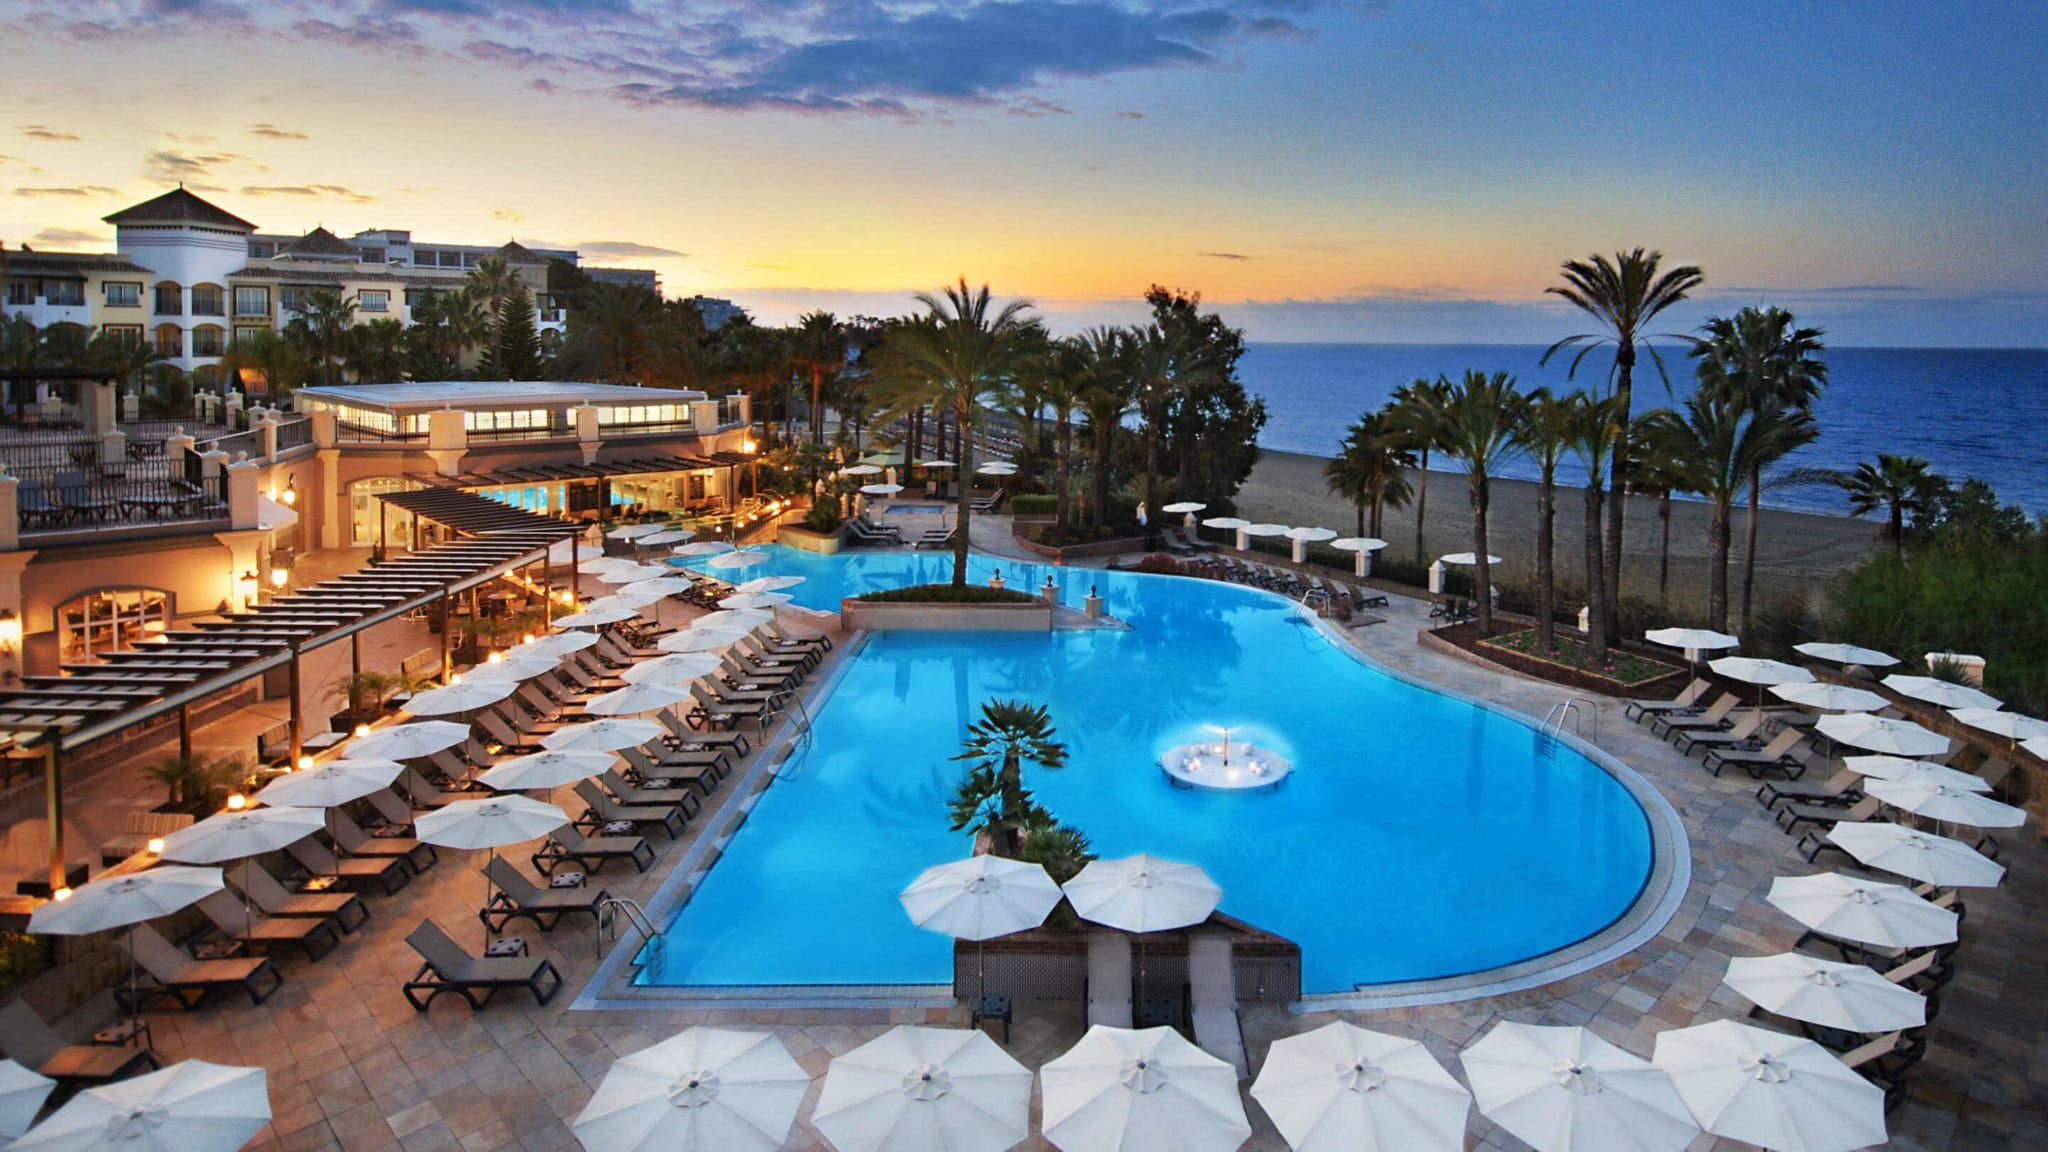 Marriott's Marbella Beach Resort Rentals